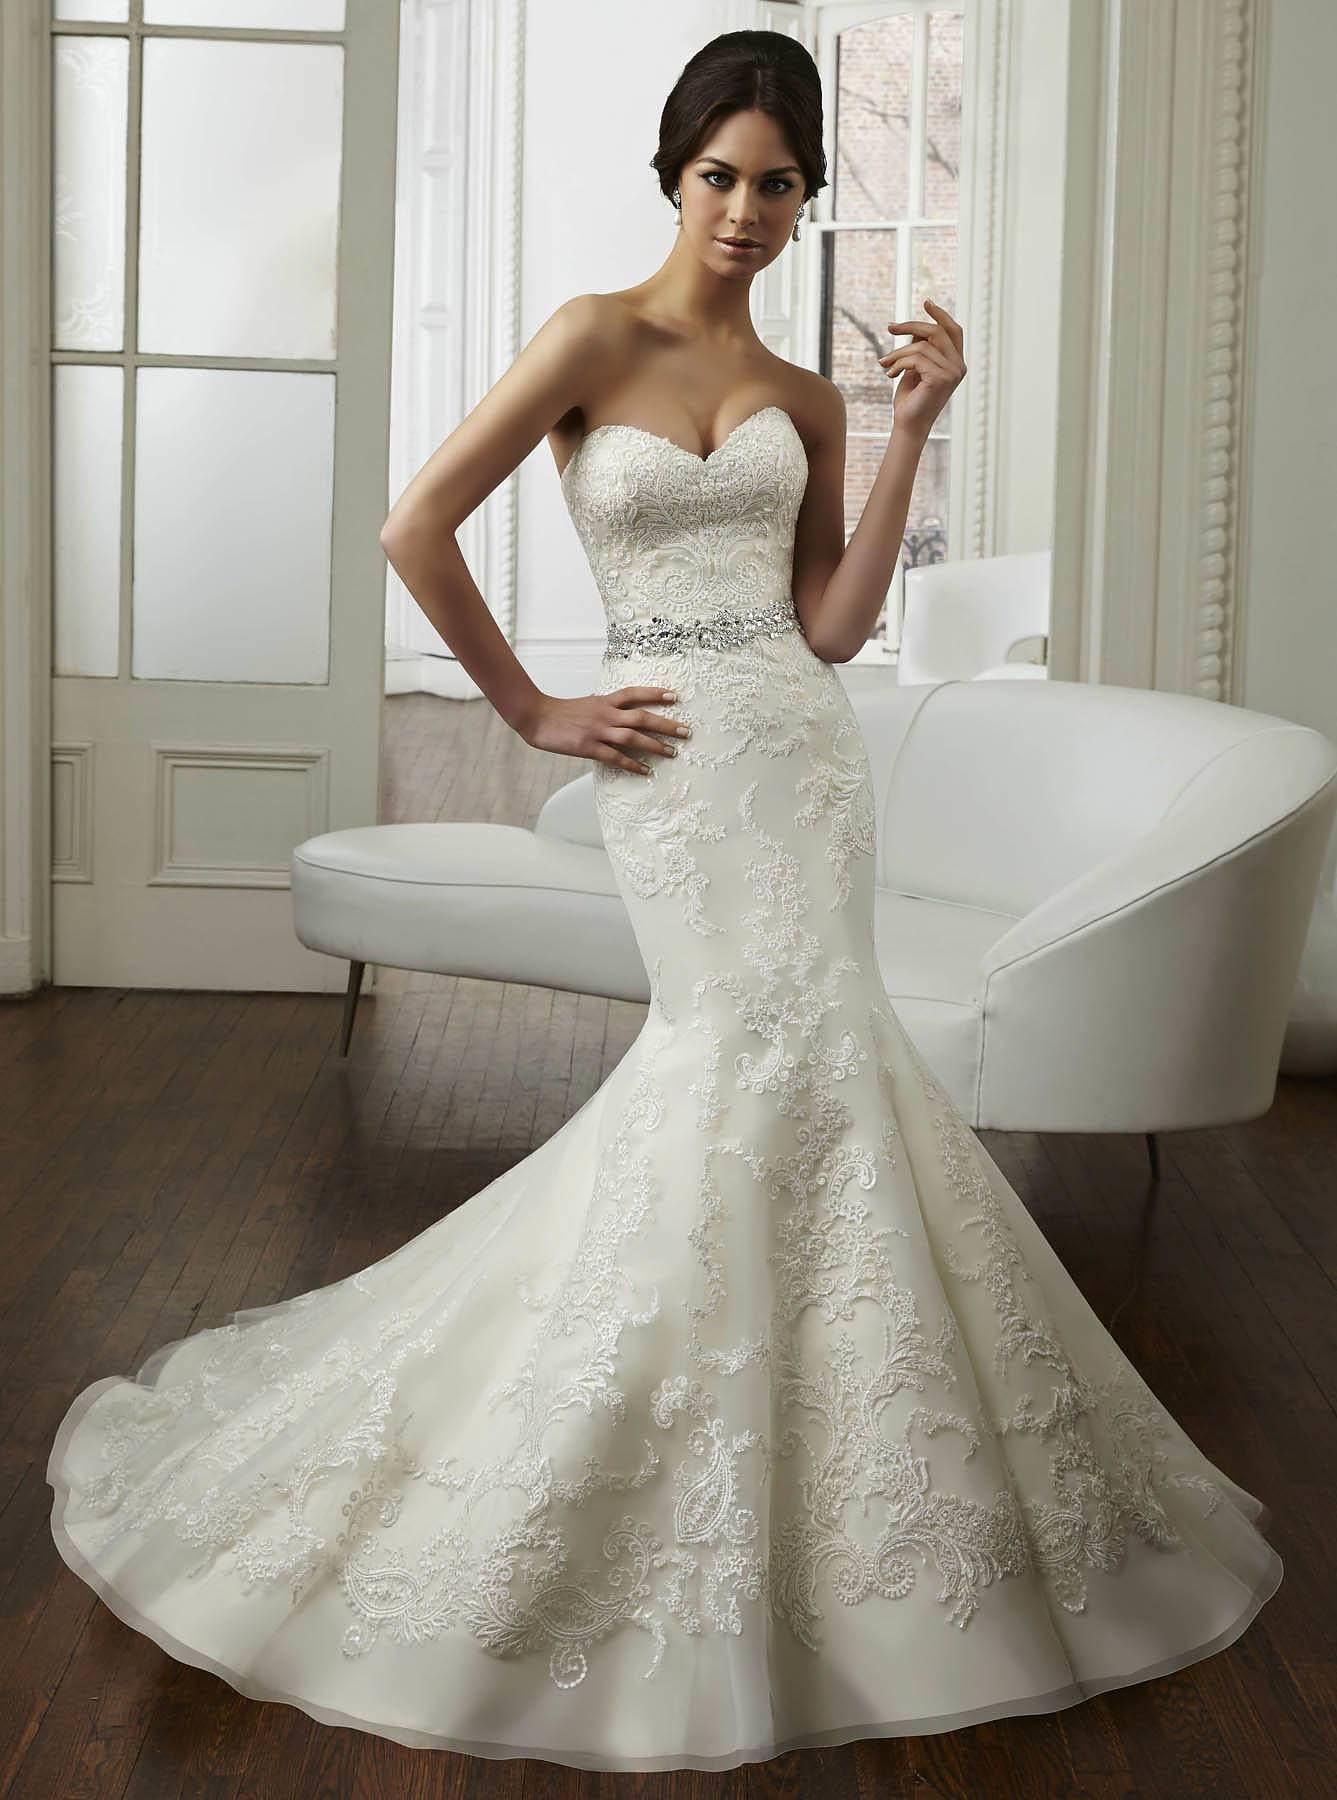 Mermaid wedding dresses with lace  A mermaid wedding gown with ornate embroidery with wide hem border